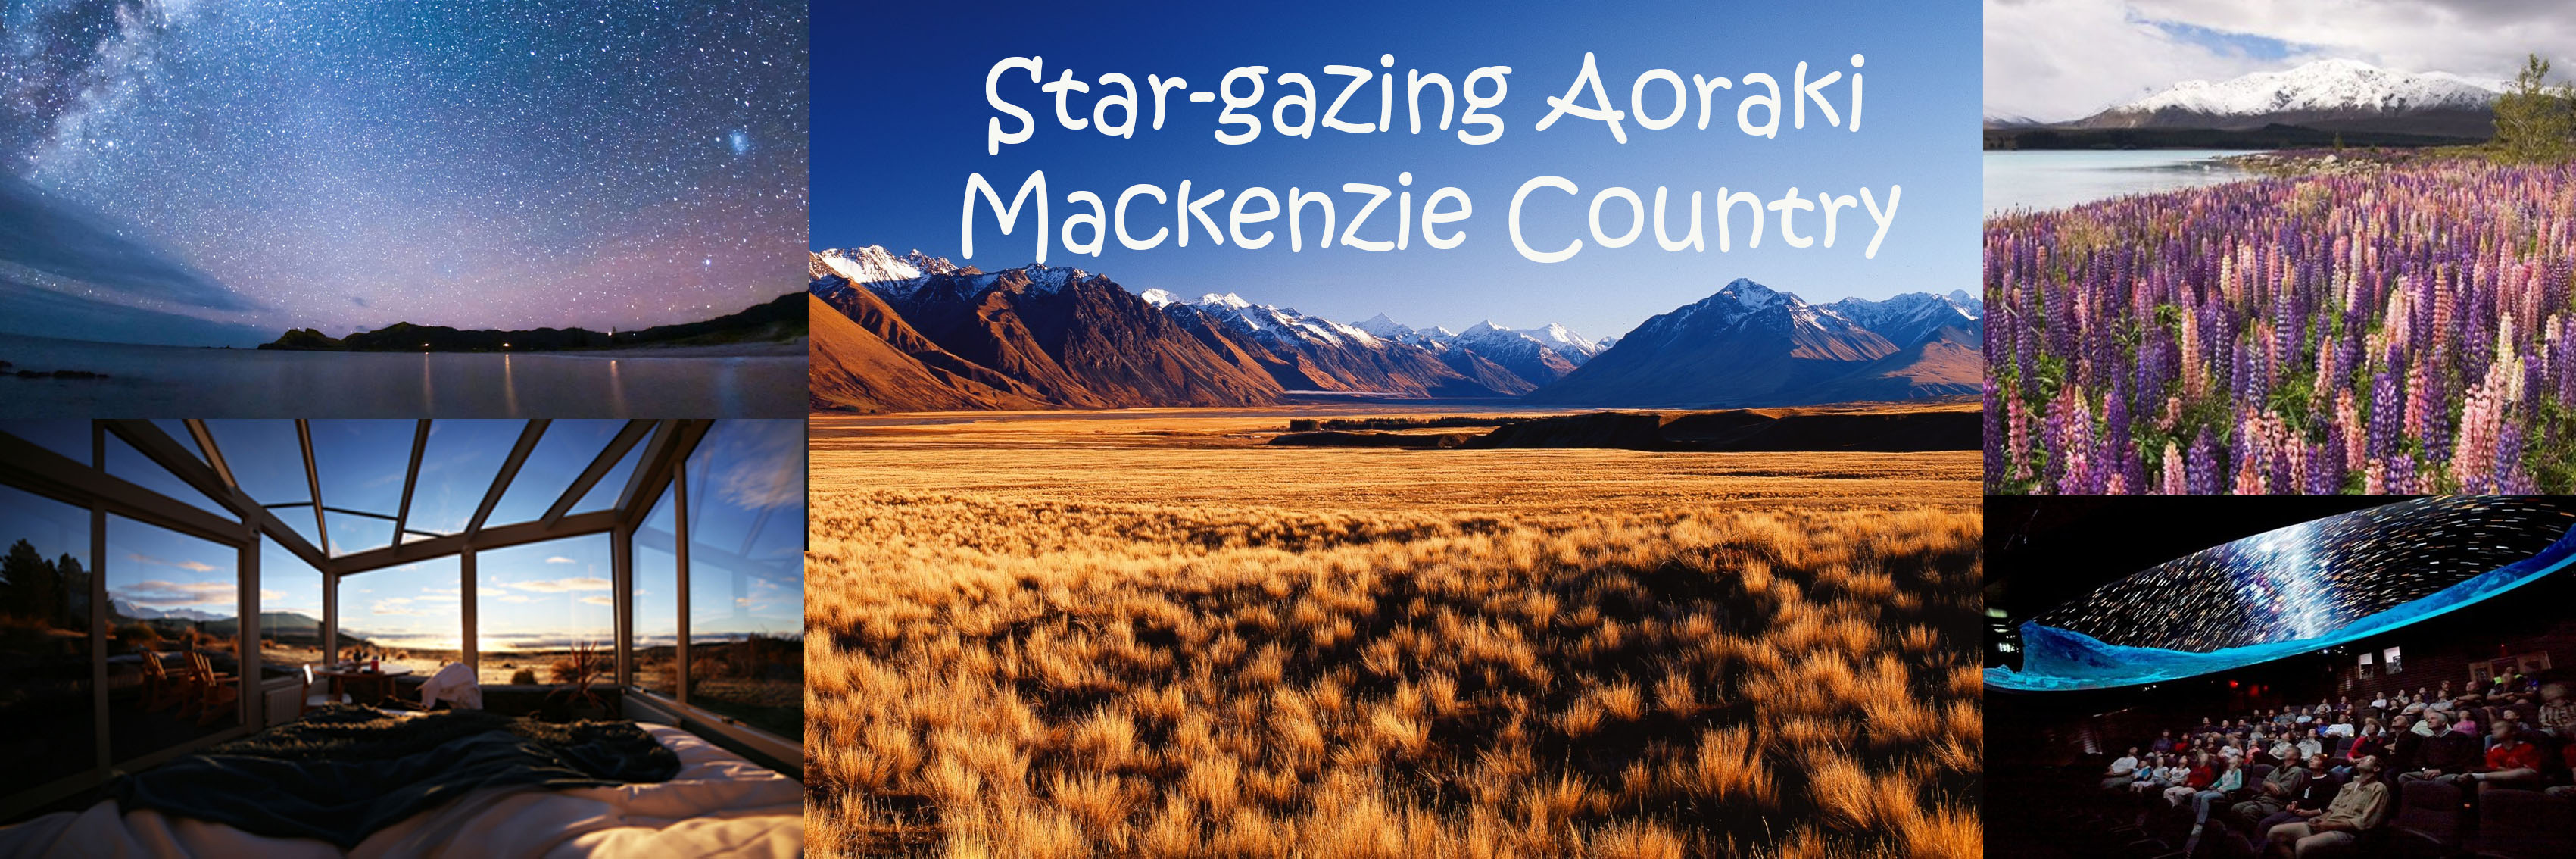 Stargazing Mackenzie Country 1250x450